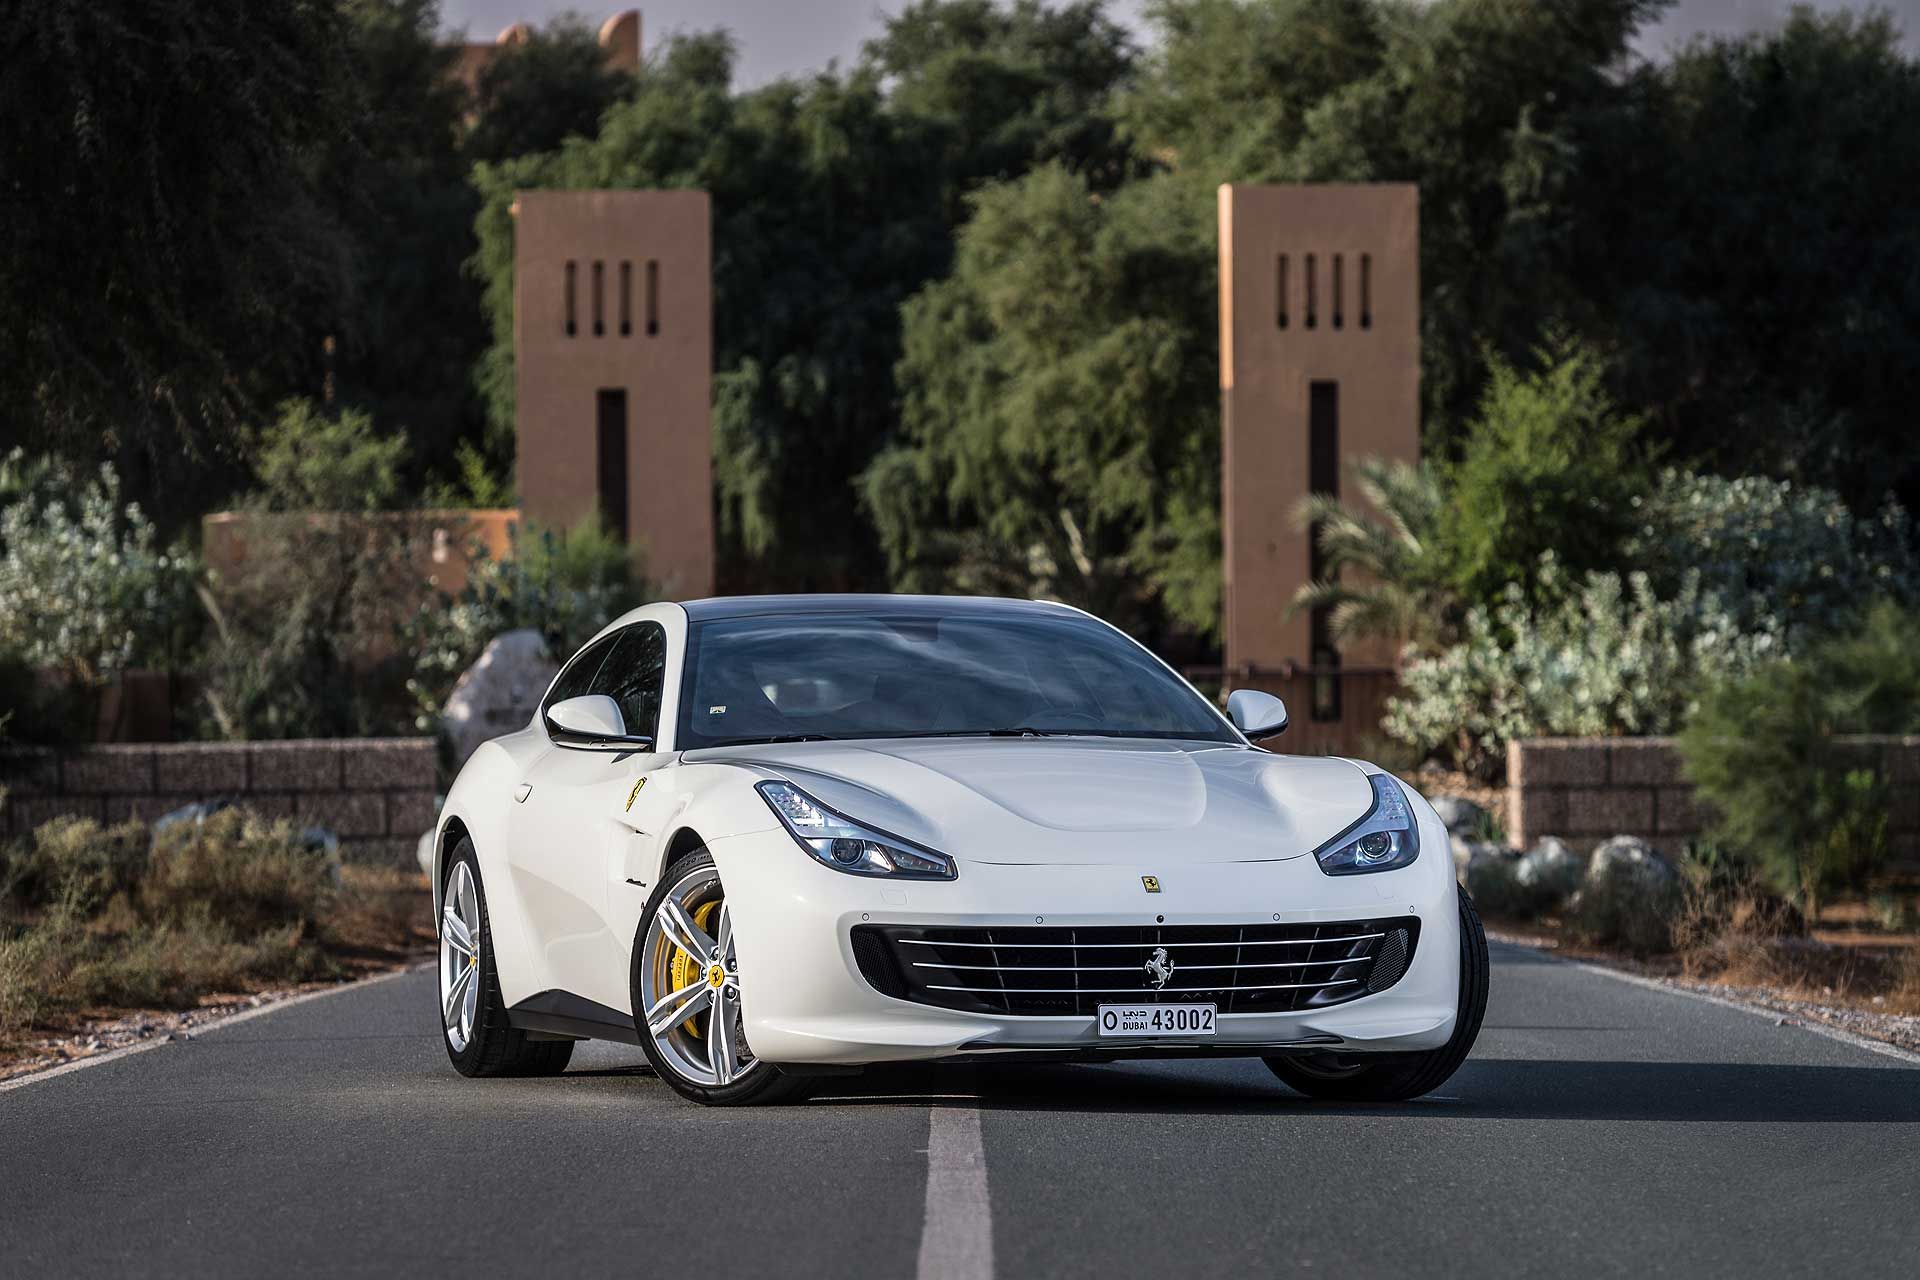 Review: The GTC4Lusso Is A Ferrari You Can Drive Everyday